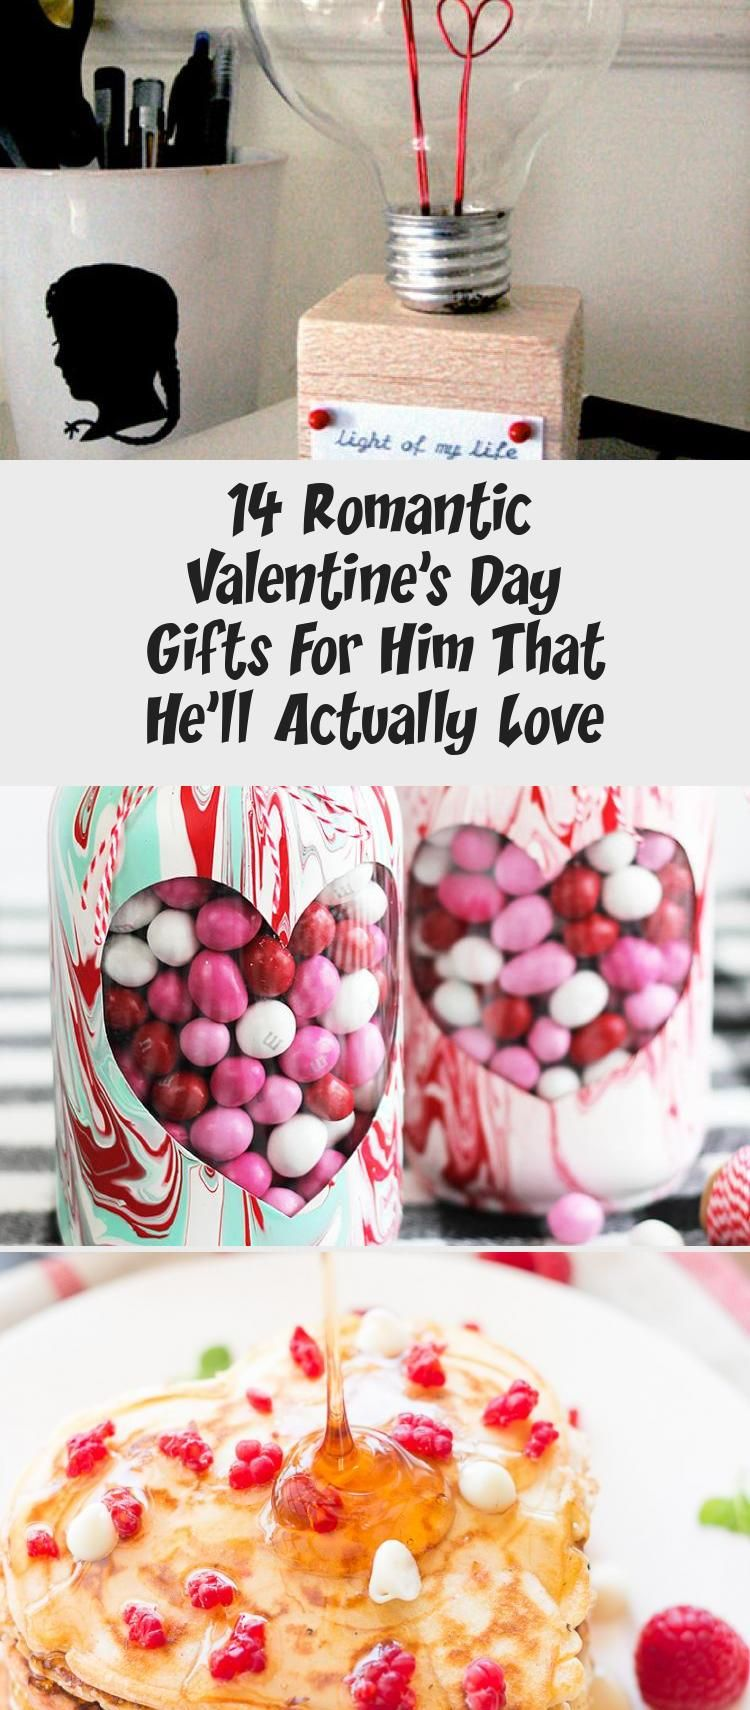 14 romantic valentines day gifts for him that hell